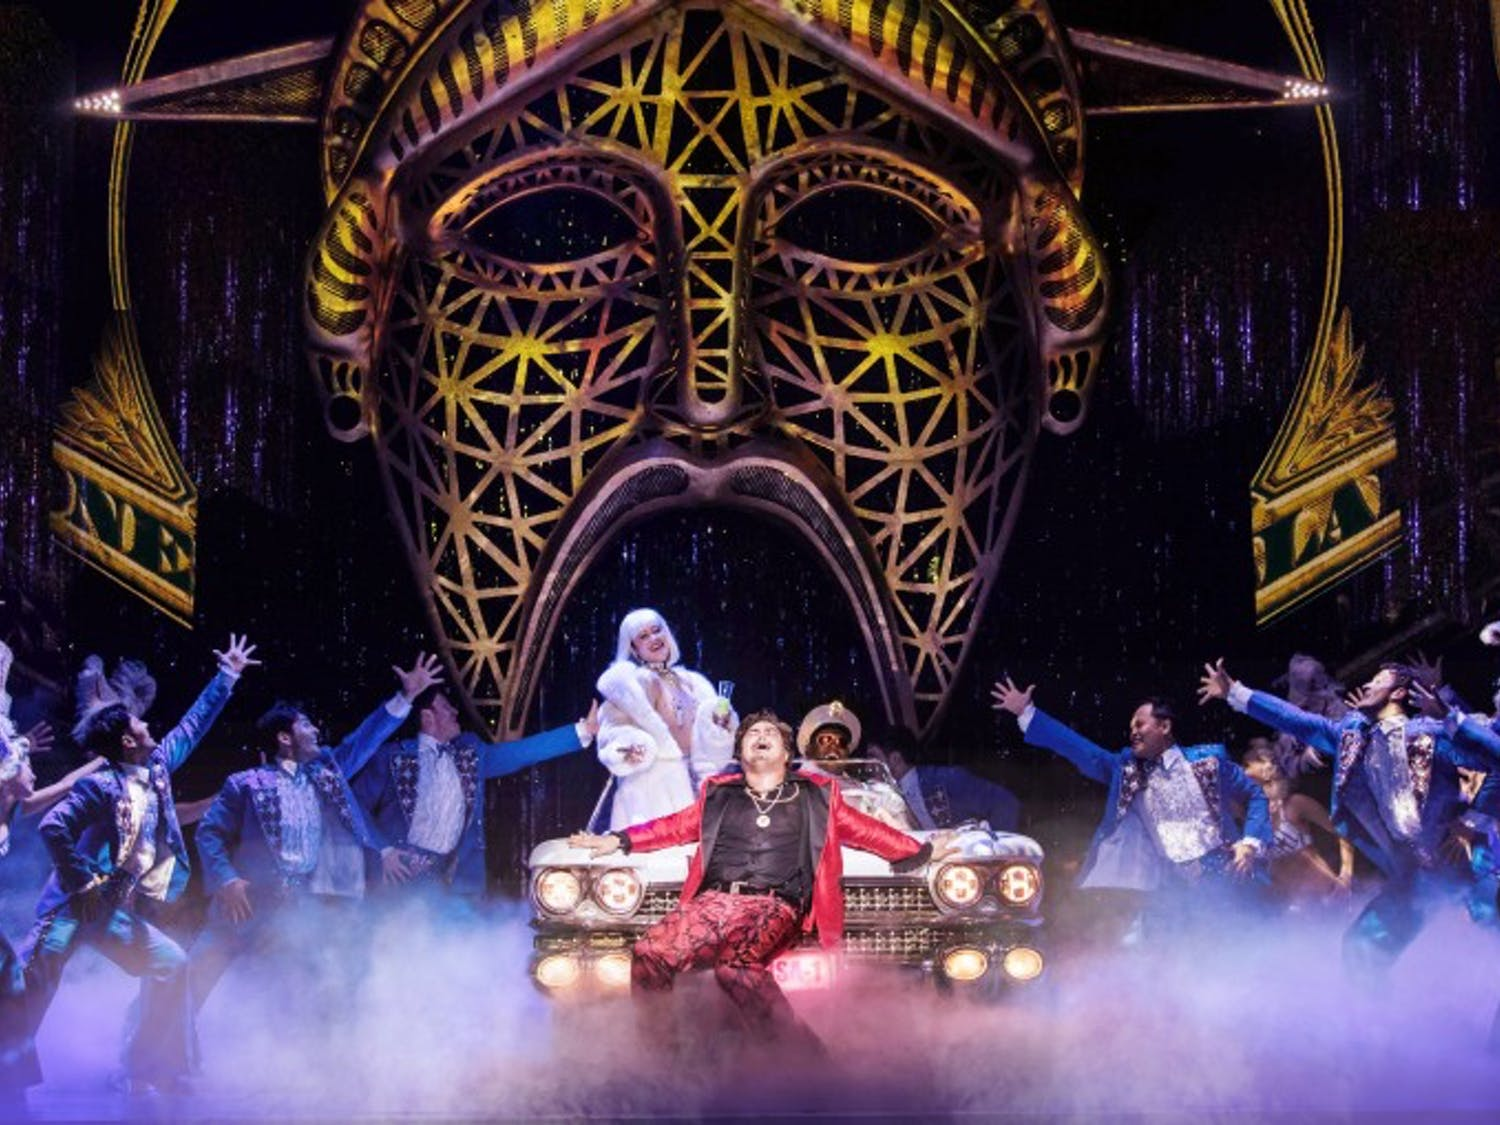 """The updated revival tour of """"Miss Saigon"""" opened at Shea's. The musical tells the tragic love story between Kim, a Vietnamese sex worker, and Chris, an American G.I., during the end of the Vietnam War."""